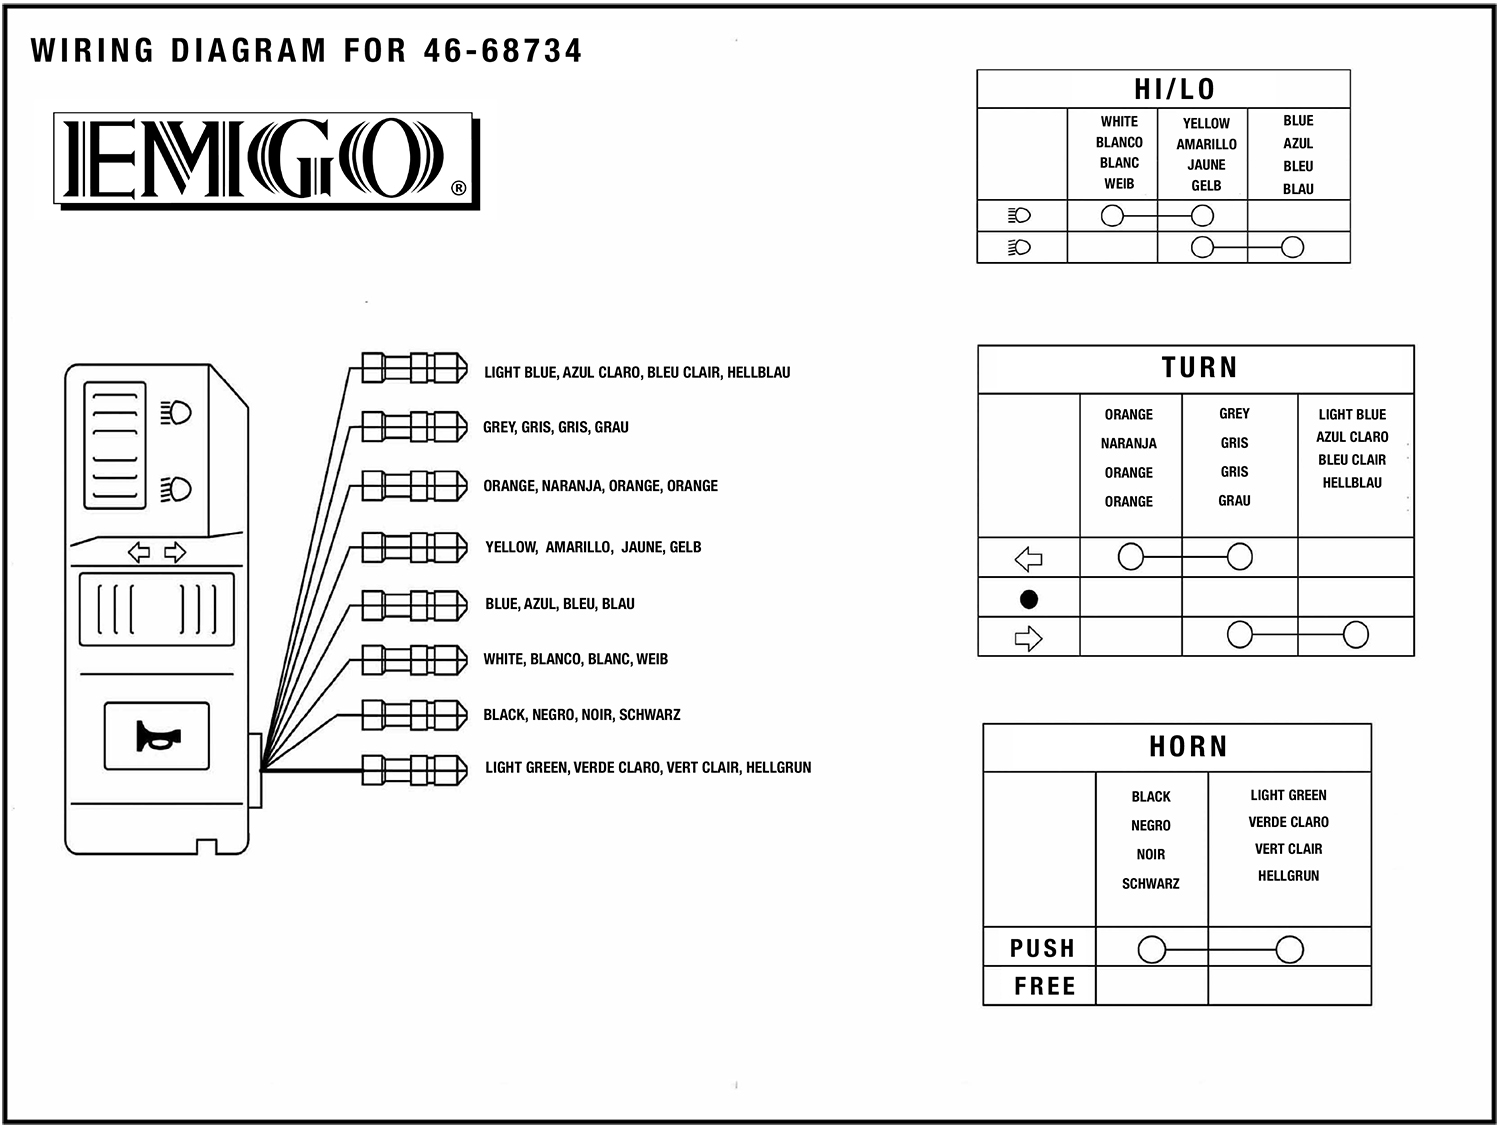 46 68734 wiring diagram left emgo schematic pin out handlebar multi switch motorcycle?t=1490389479 emgo universal handlebar multi switch left 46 68734 wiring honda nt650 wire diagram at reclaimingppi.co